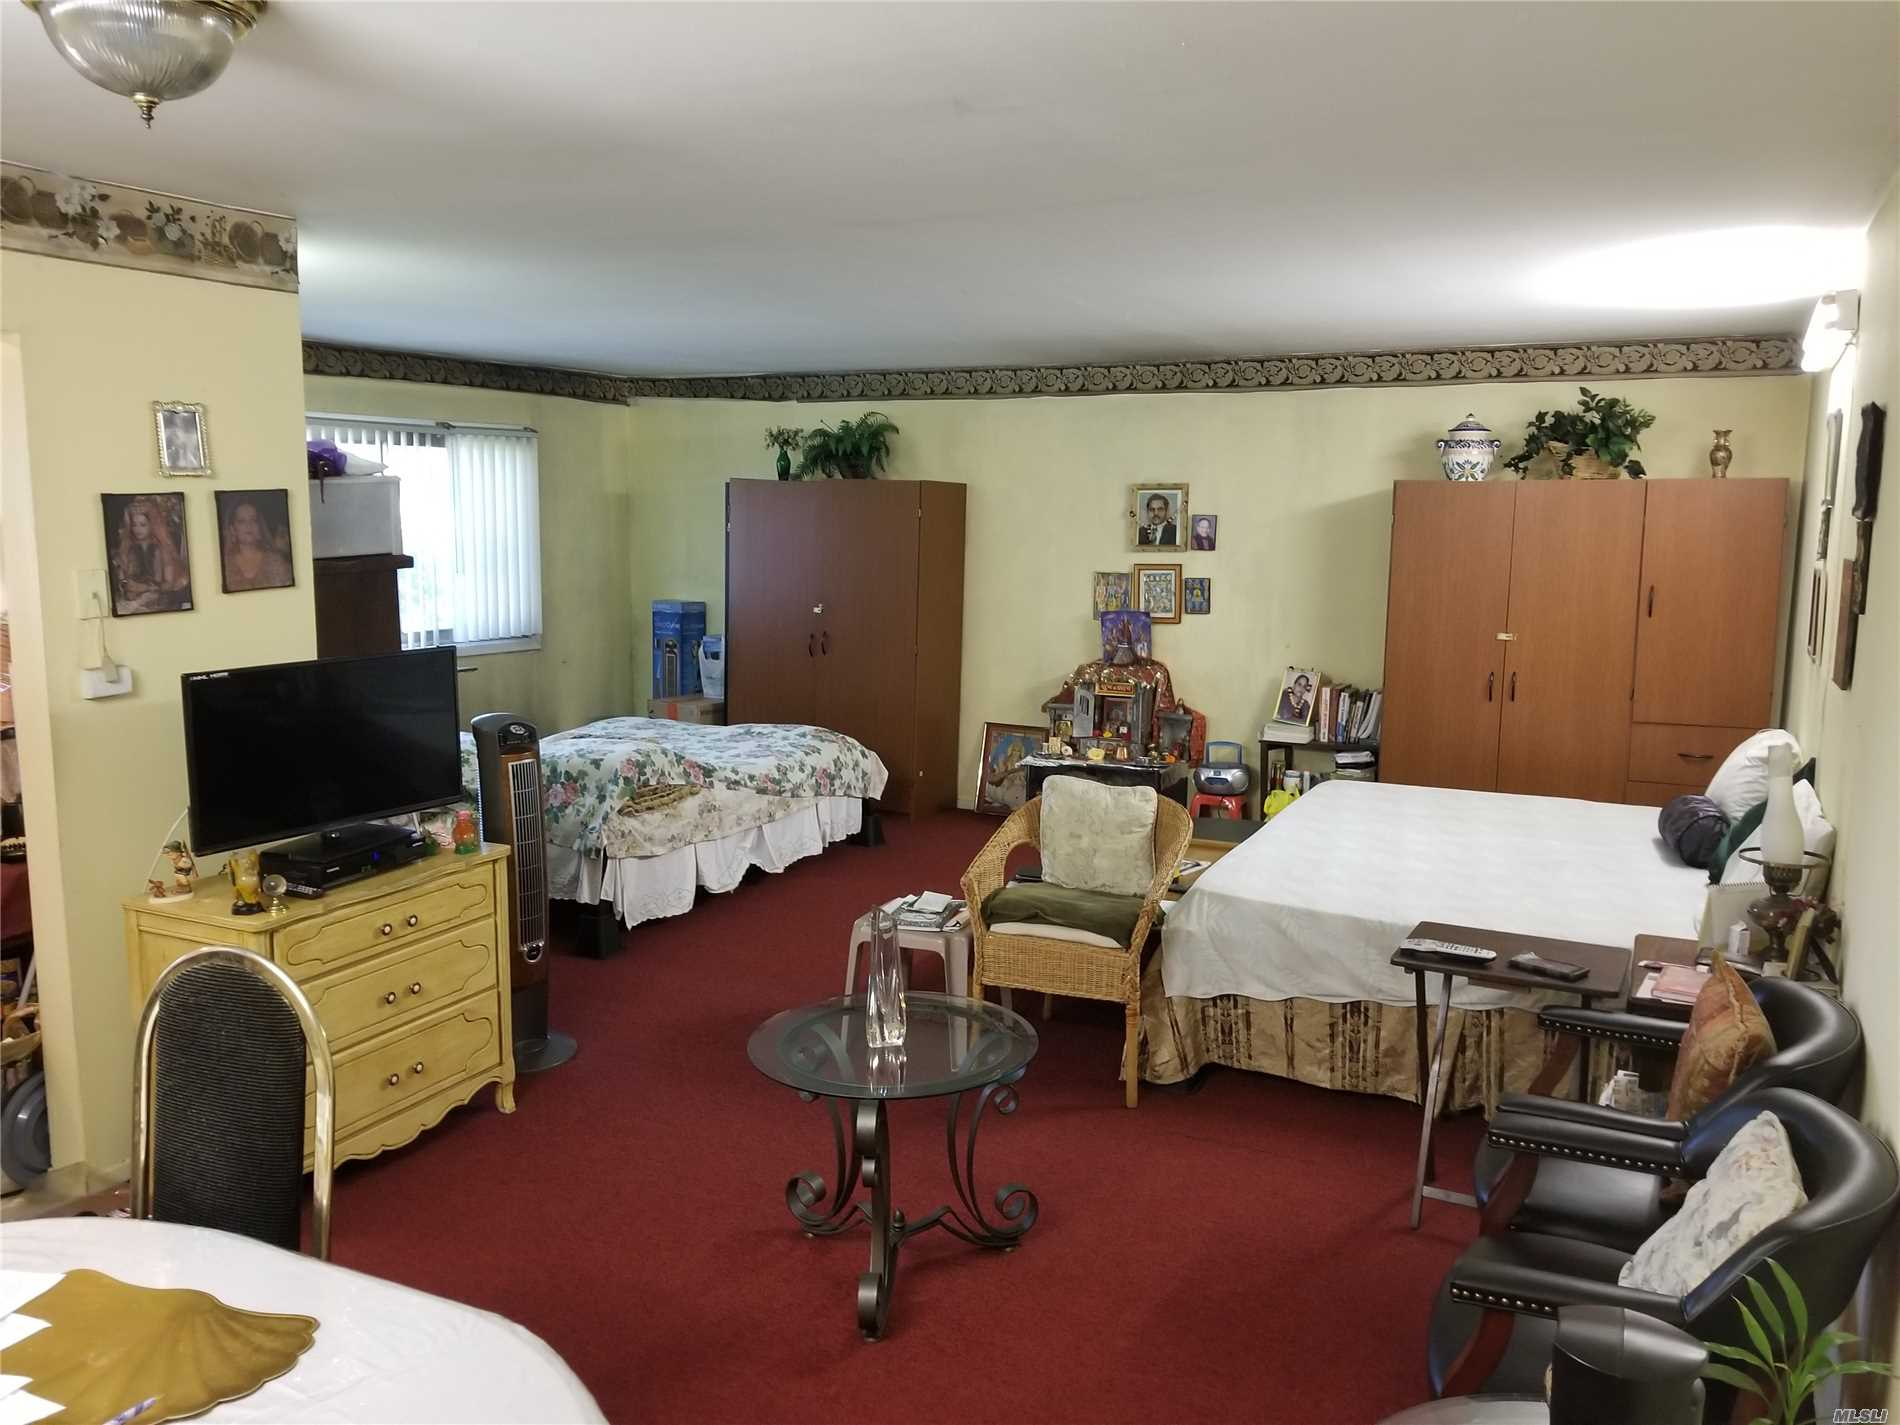 Fantastic Opportunity To Affordability!! Very Large Studio, Potential To Convert To 1 Br. With Board Approval. Super Low Maintenance. Pet Friendly. Pool/Gym/ Clubhouse. Why Would You Rent? Will Not Last! Maintenance With Star $433!